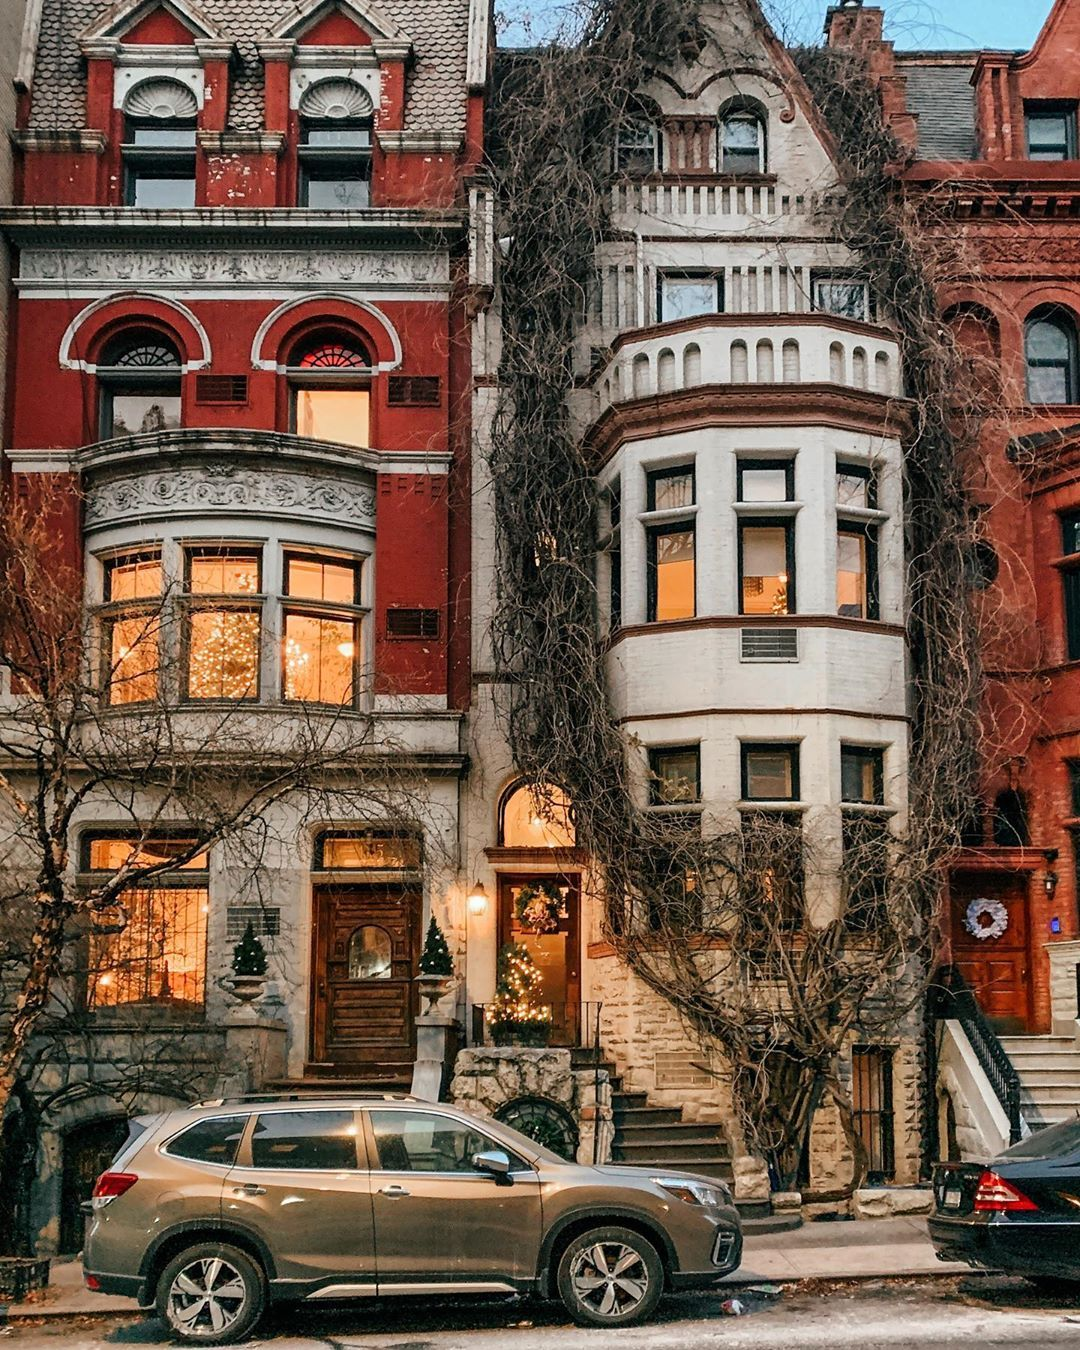 Christmas Trees 2020 Upper Manhattan Pin by M on building in 2020 | New york travel, Upper west side